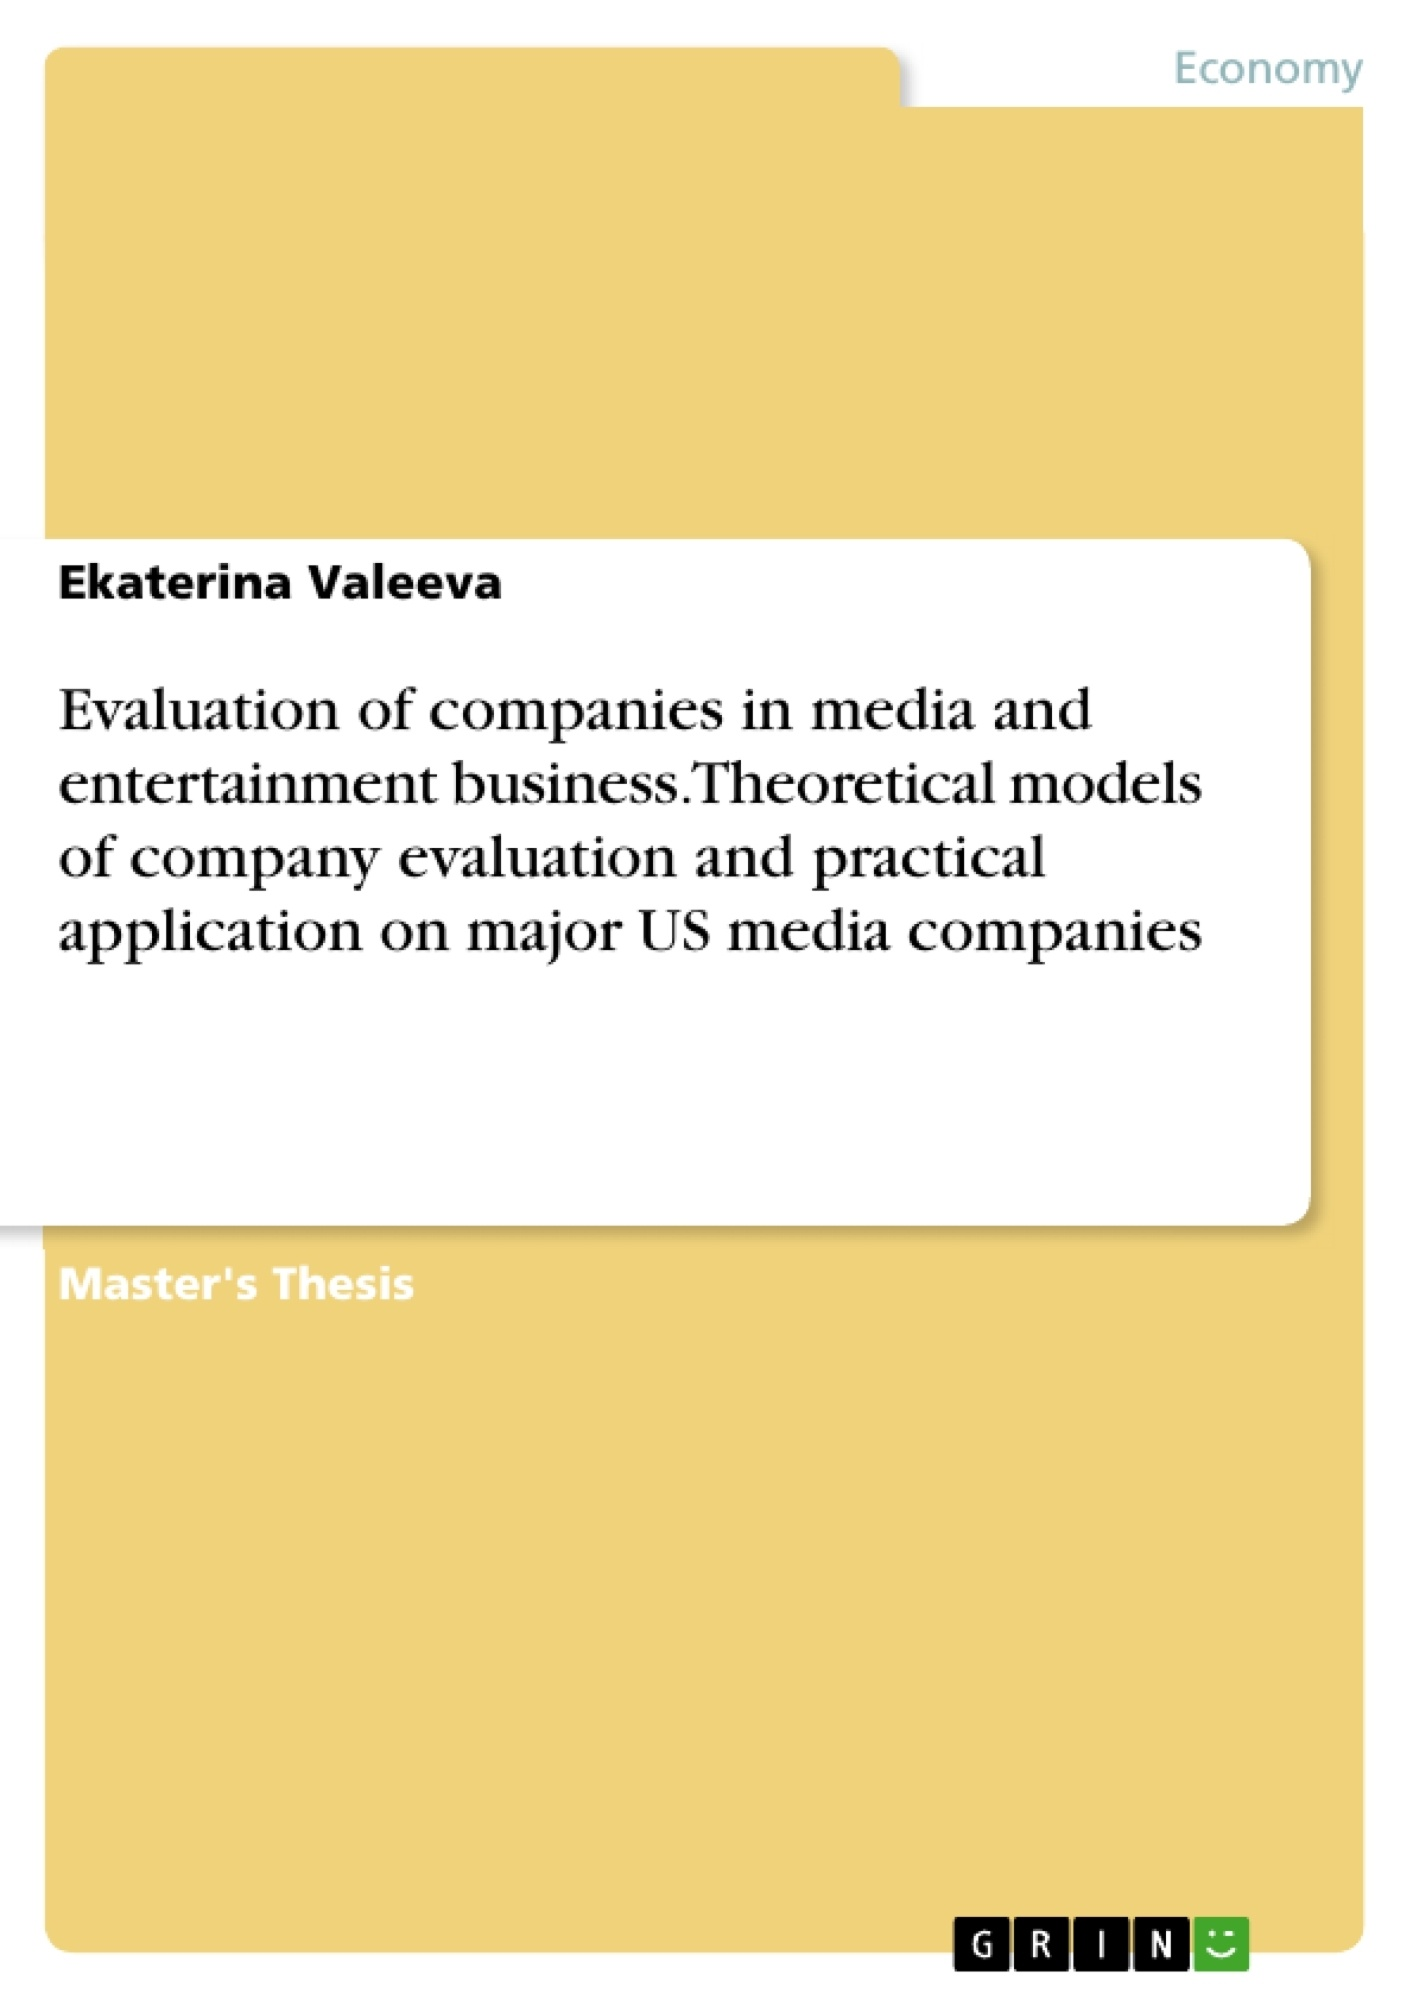 Title: Evaluation of companies in media and entertainment business. Theoretical models of company evaluation and practical application on major US media companies